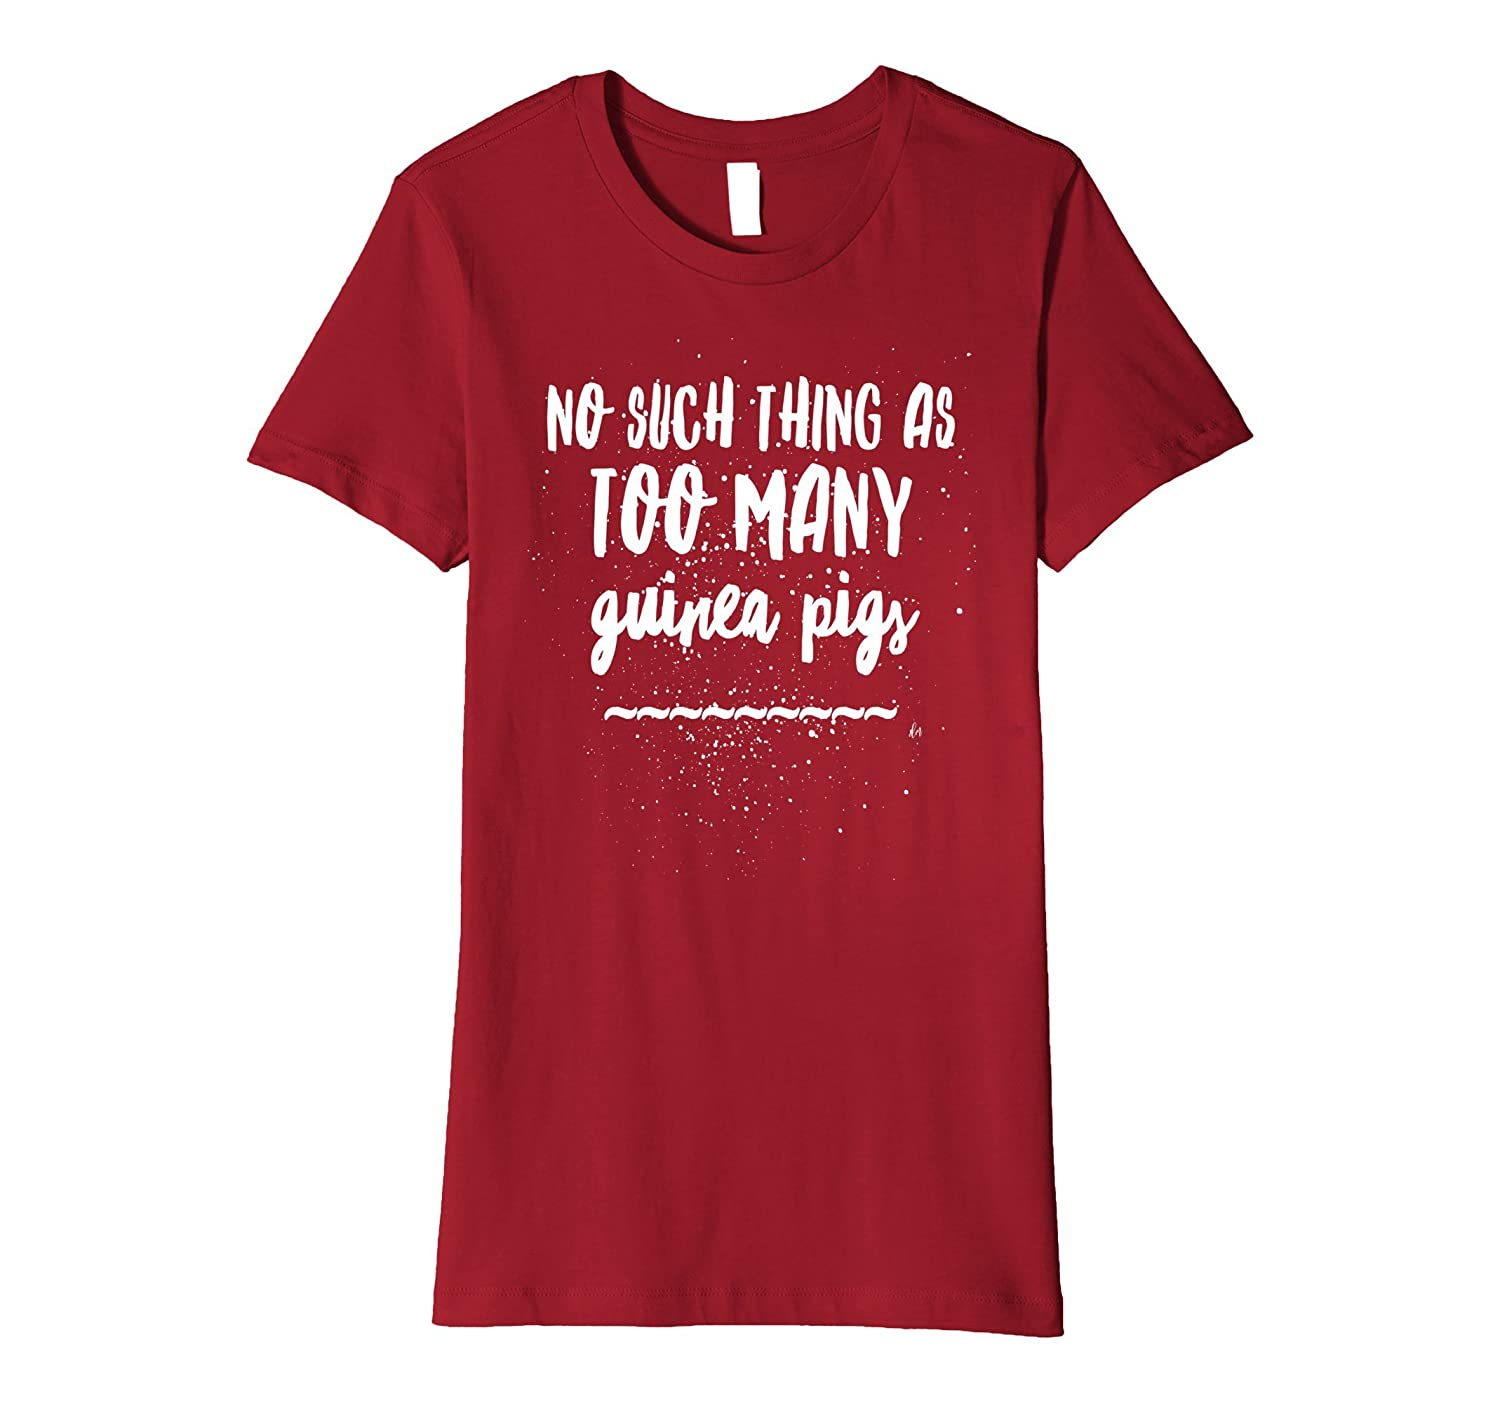 Premium Funny Guinea Pig T-shirt No Such Thing As Too Many G